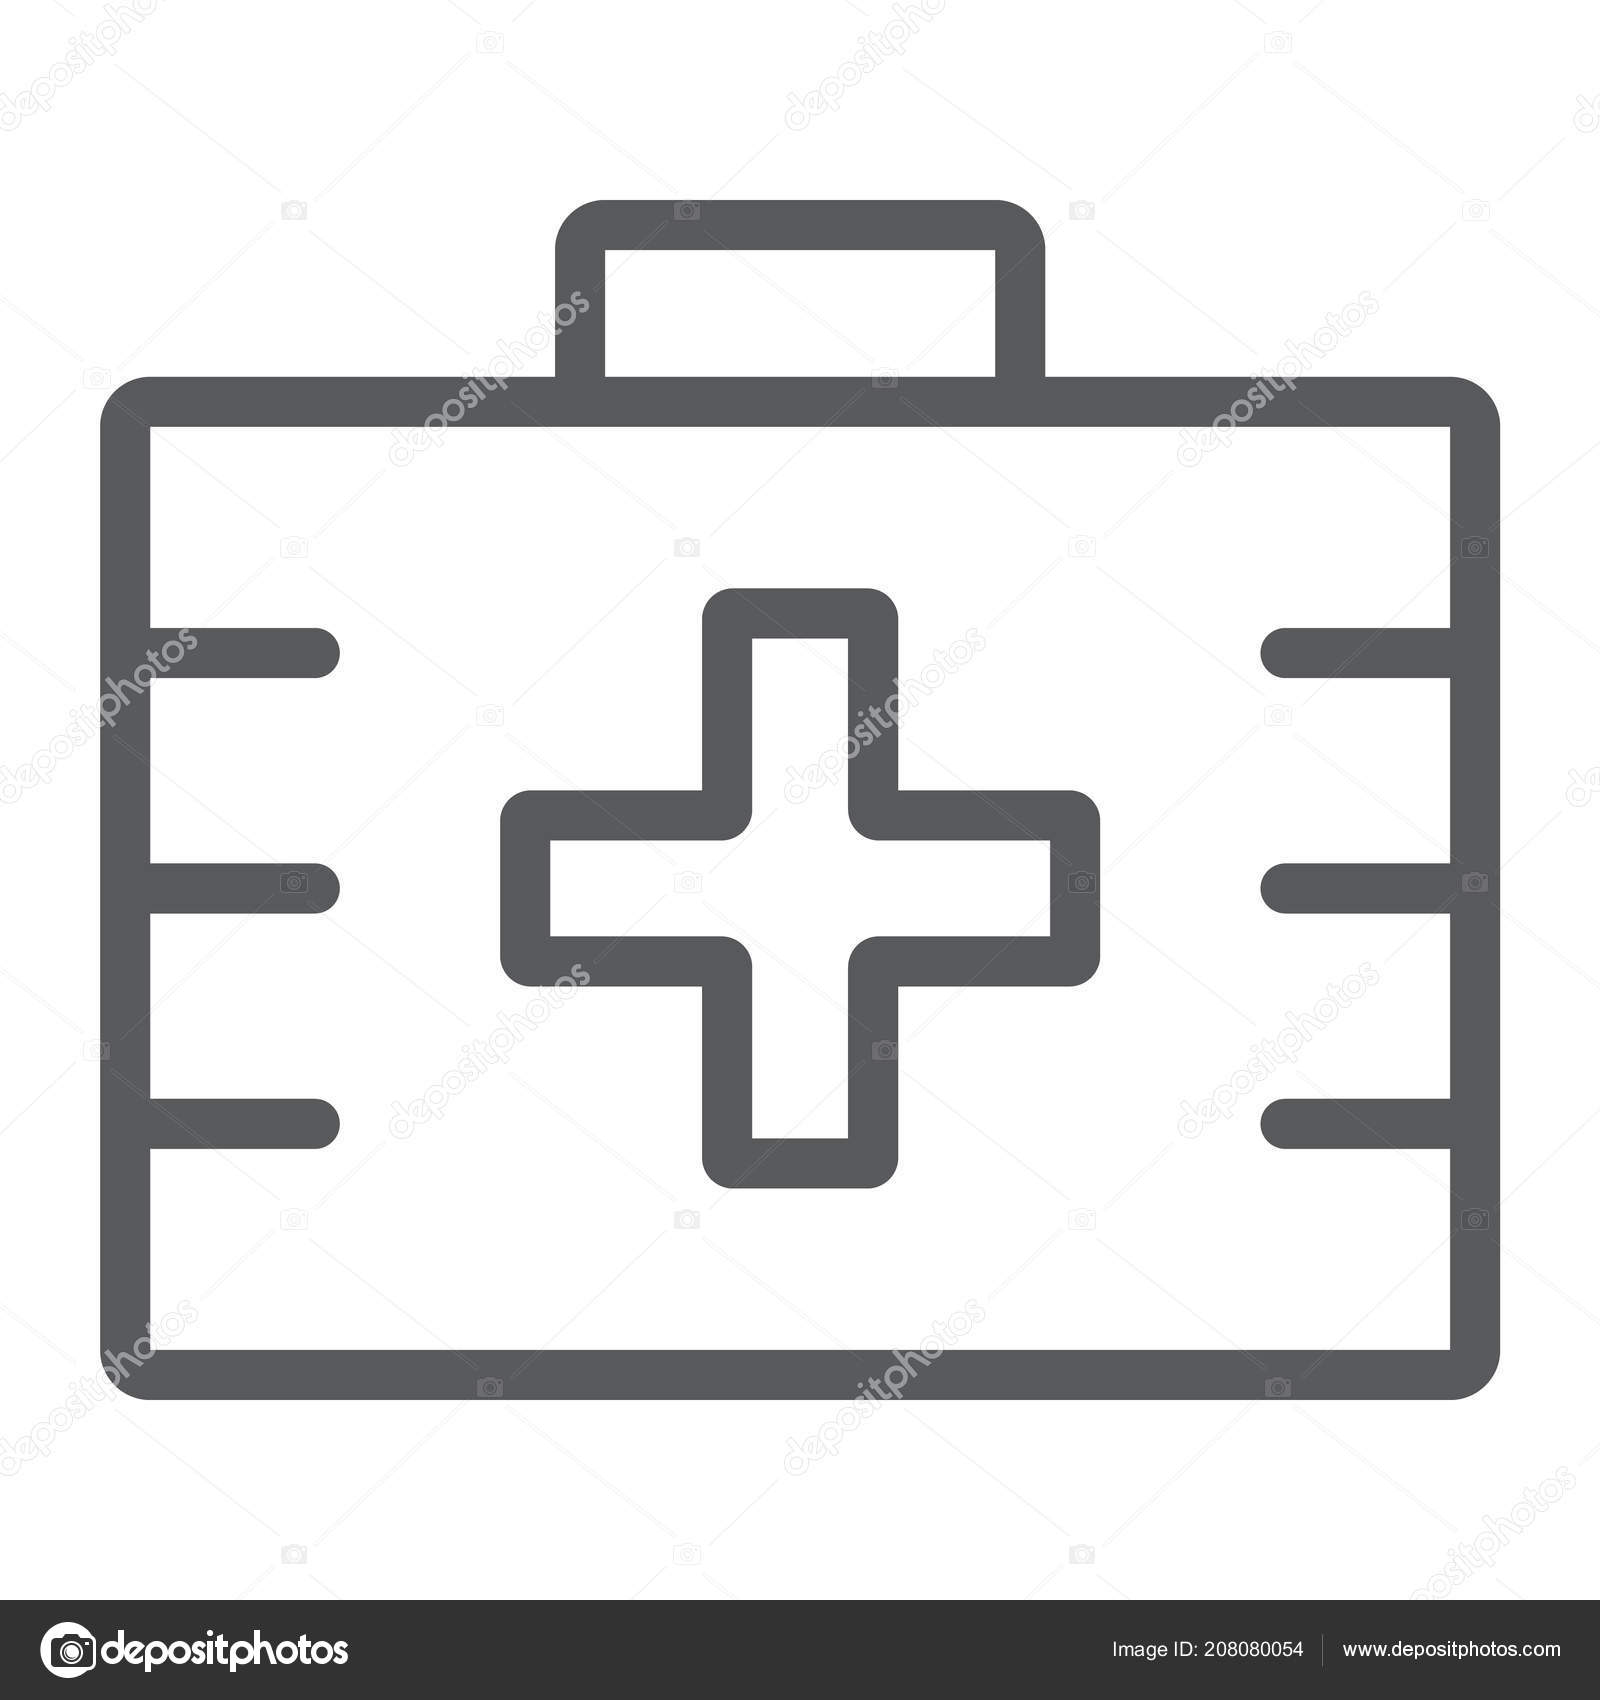 First aid kit line icon, health and clinical, medical bag sign